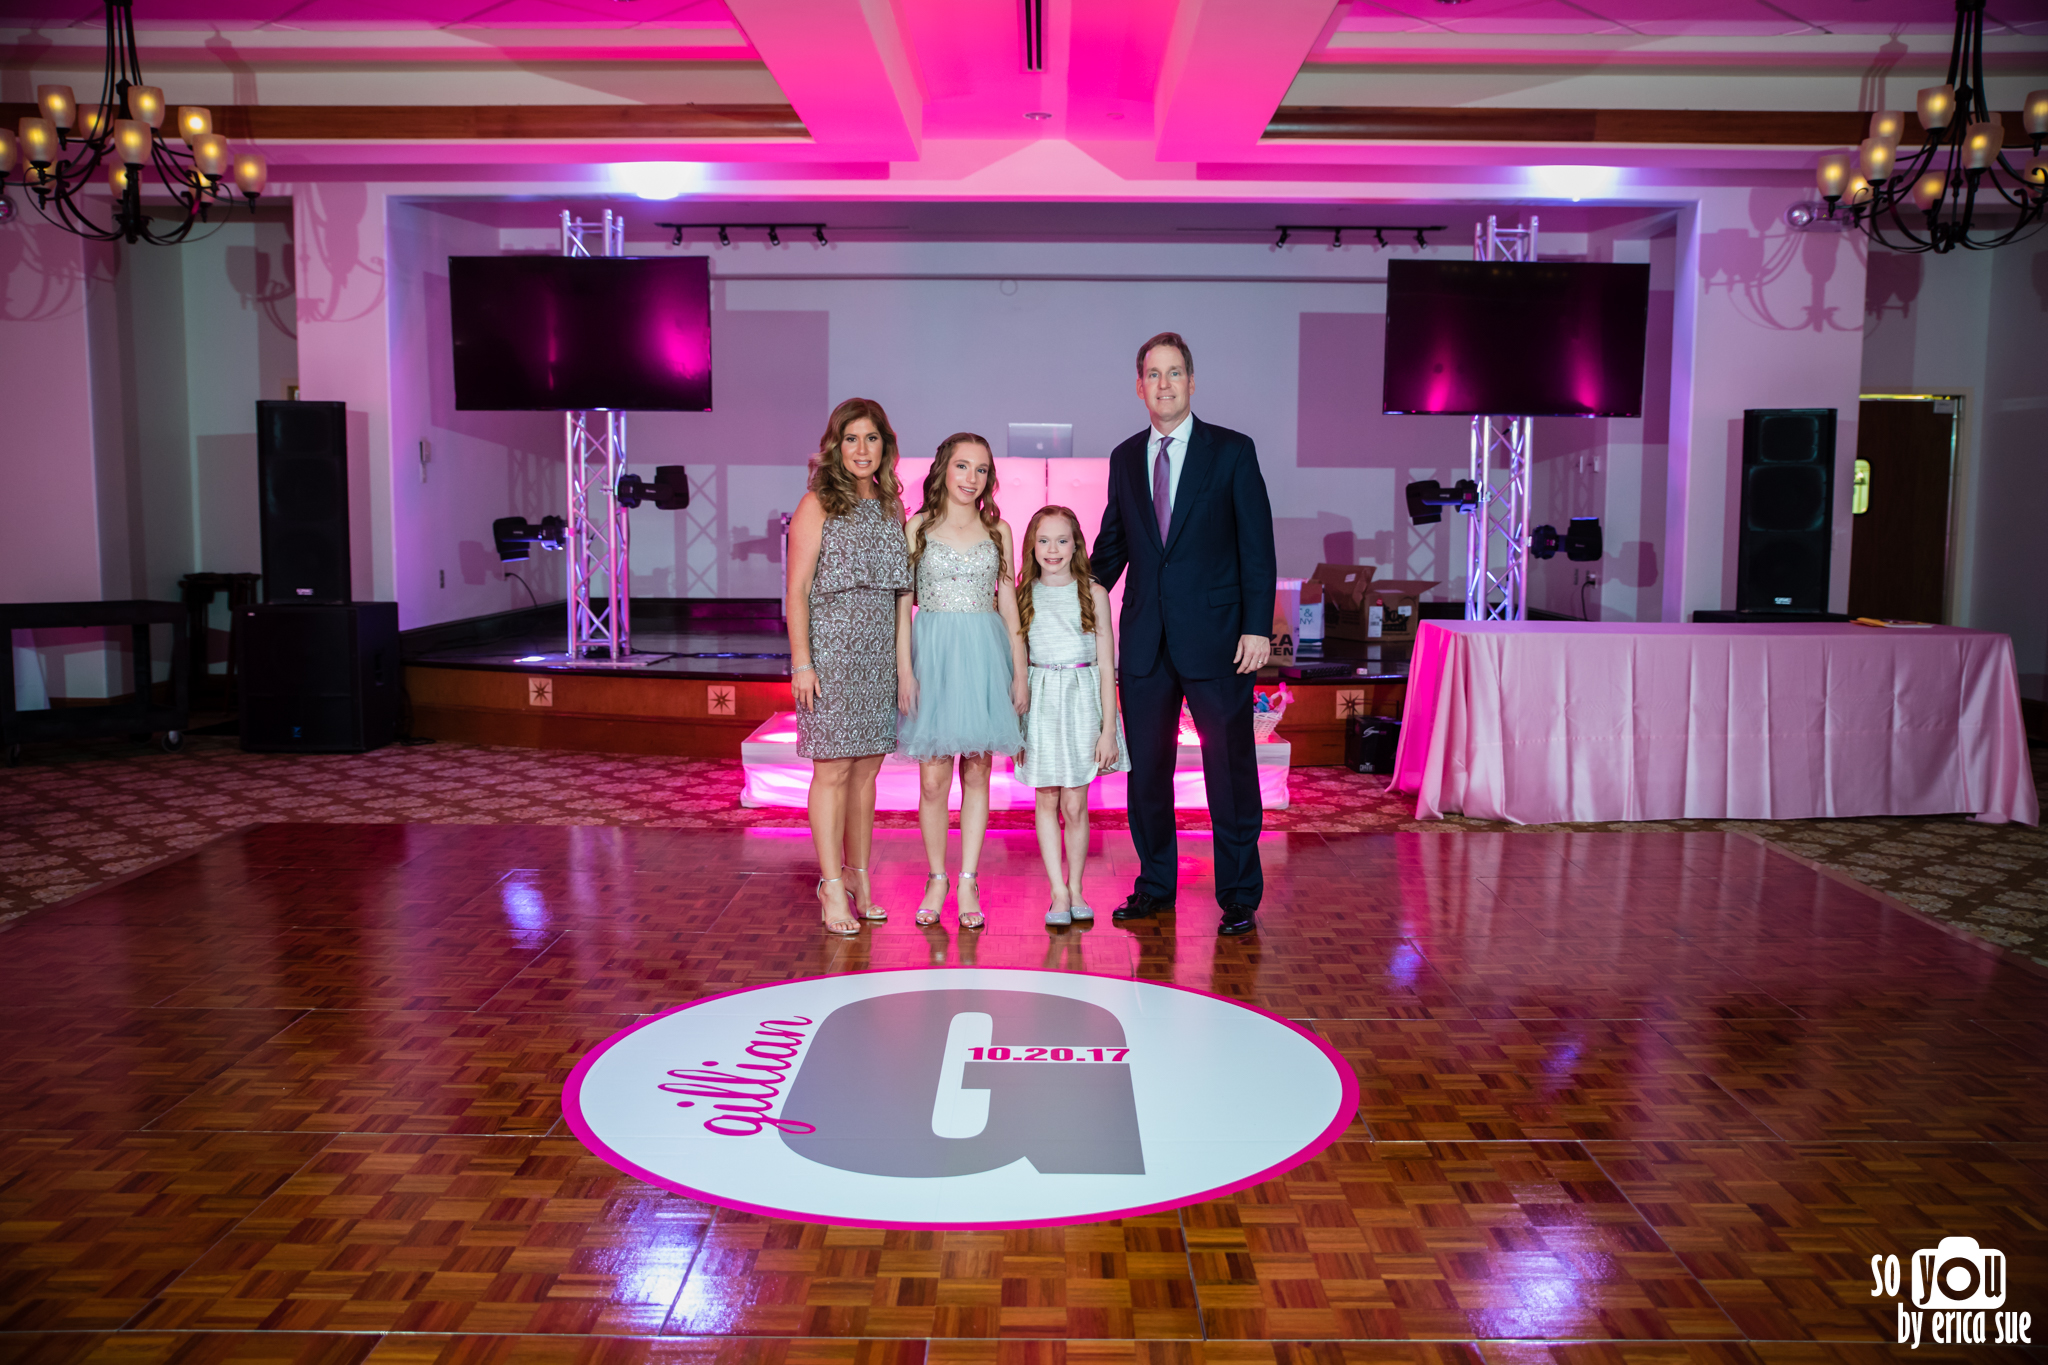 parkland-fl-mitzvah-photography-so-you-by-erica-sue-0781.jpg